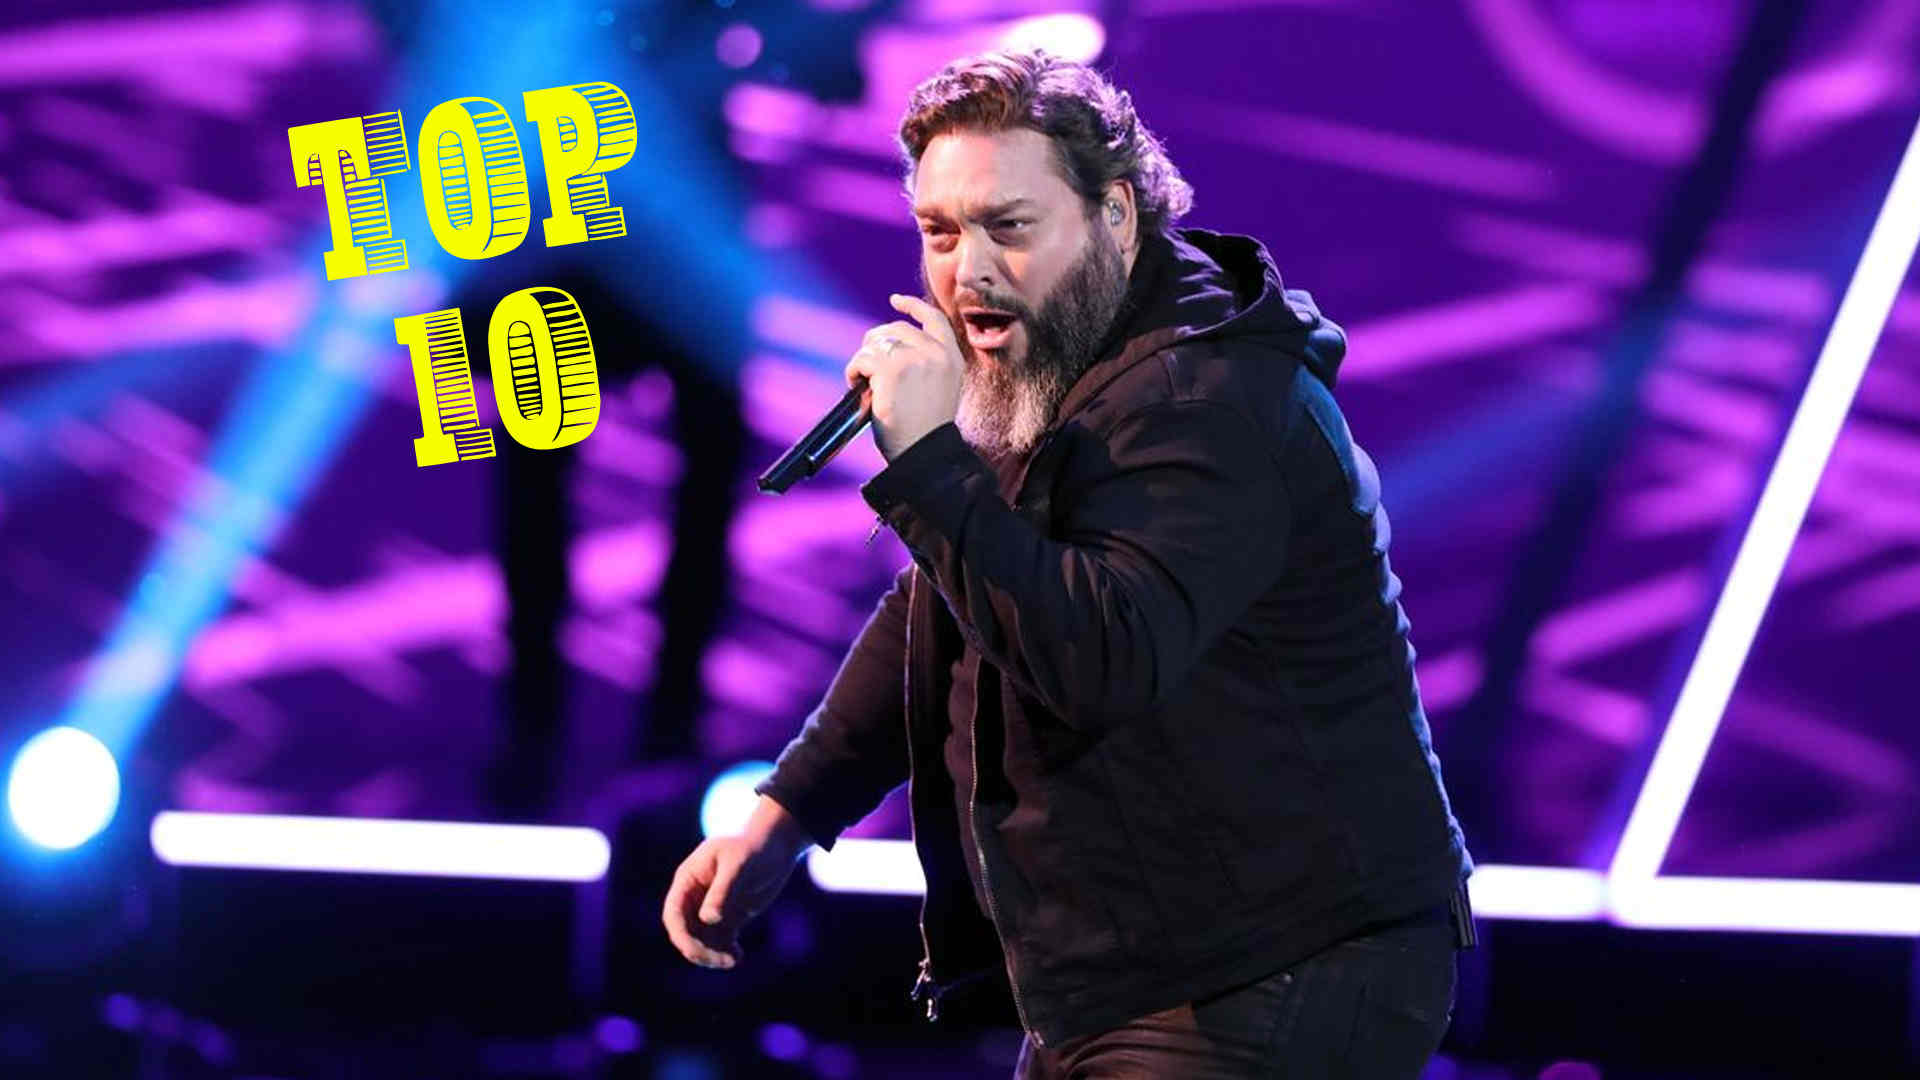 Vote Dave Fenley the Voice 2018 Live Top 10 on 3 December 2018 with The Voice 2018 Voting App Online